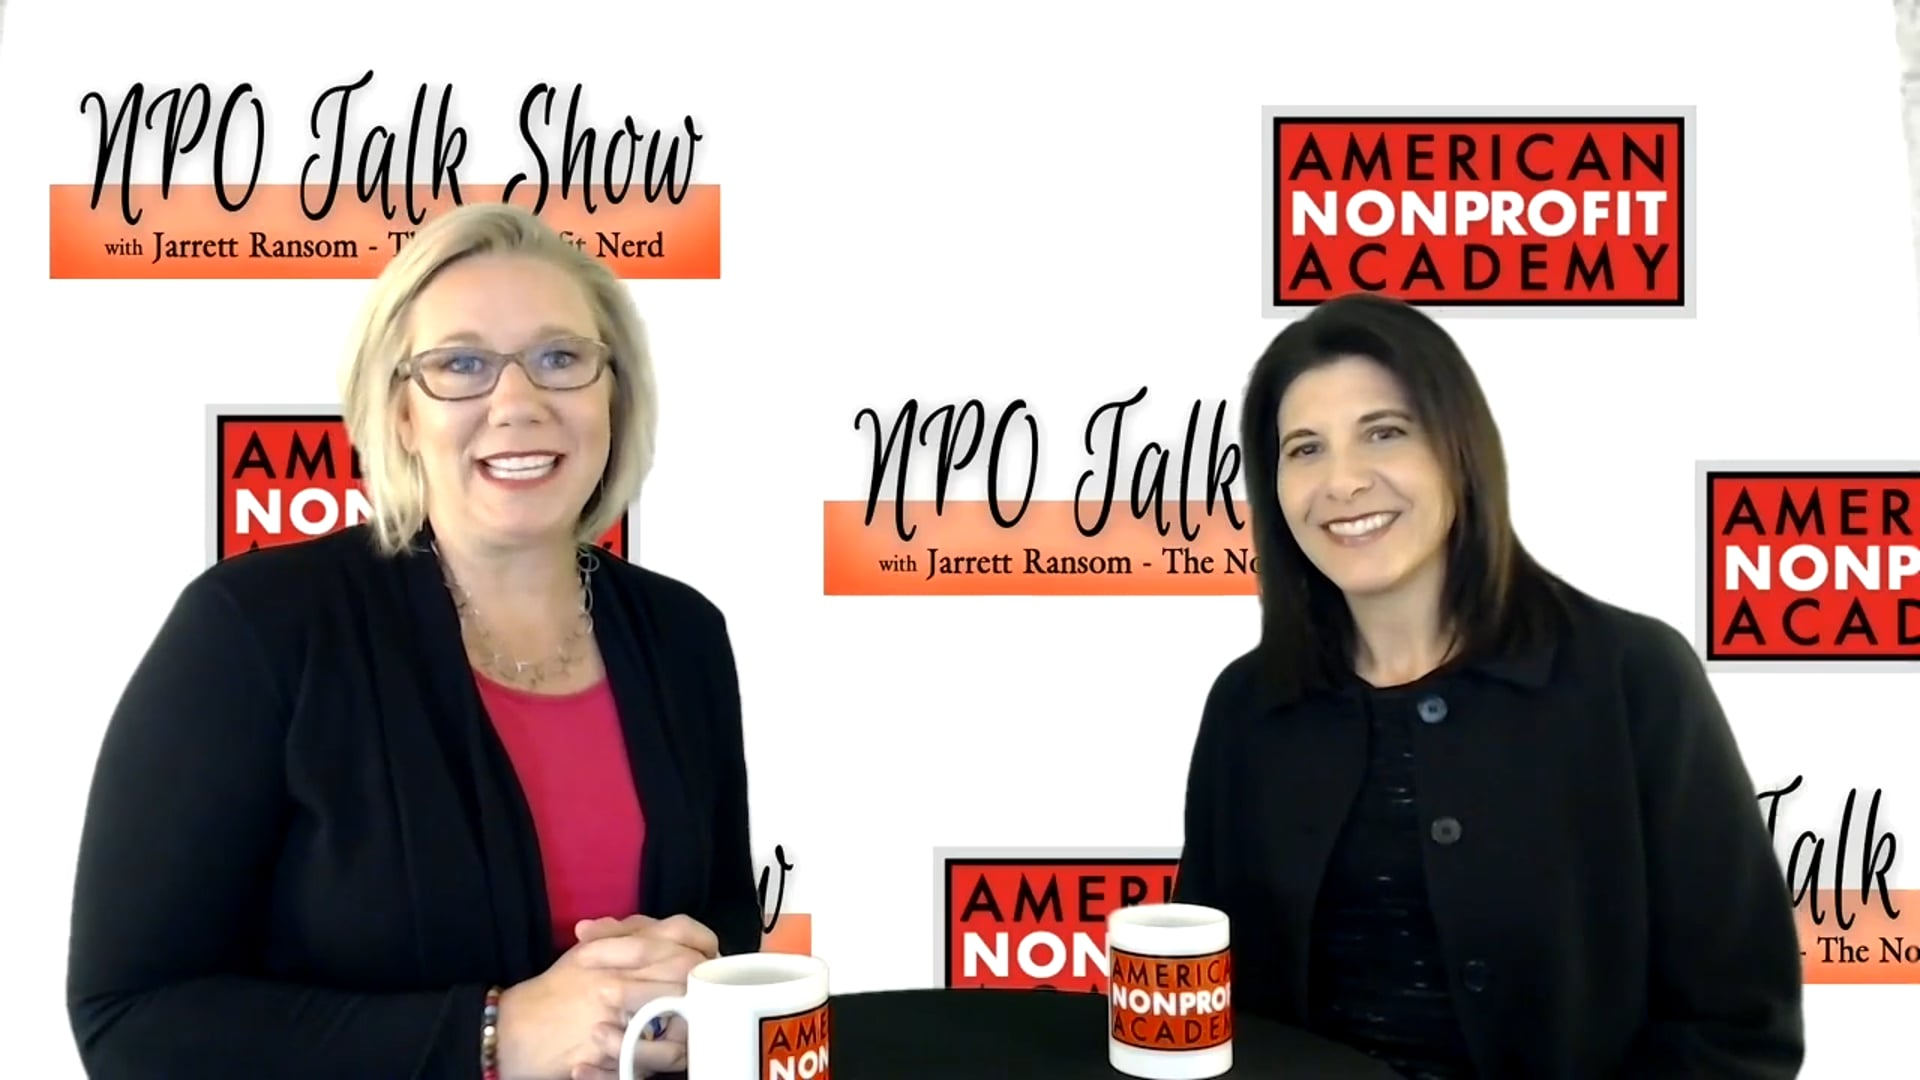 Have You Lawyered Up Yet? with guest Laura Lo Bianco, Partner, Lewis Roca Rothgerber Christie